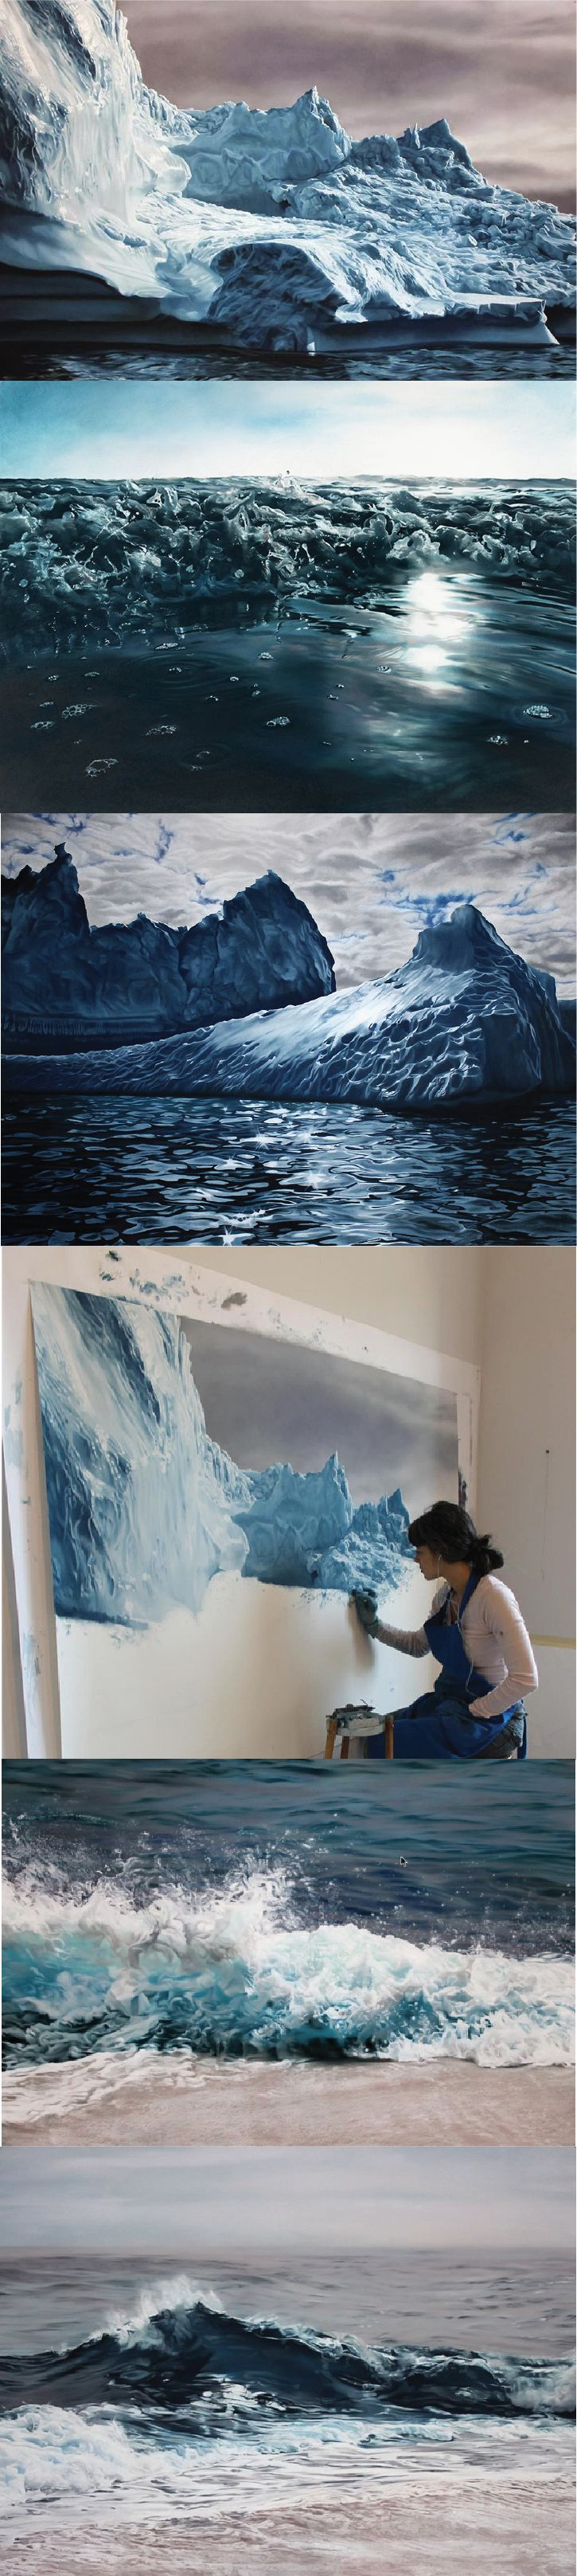 Hyperrealistic Finger painting, Zaria Forman